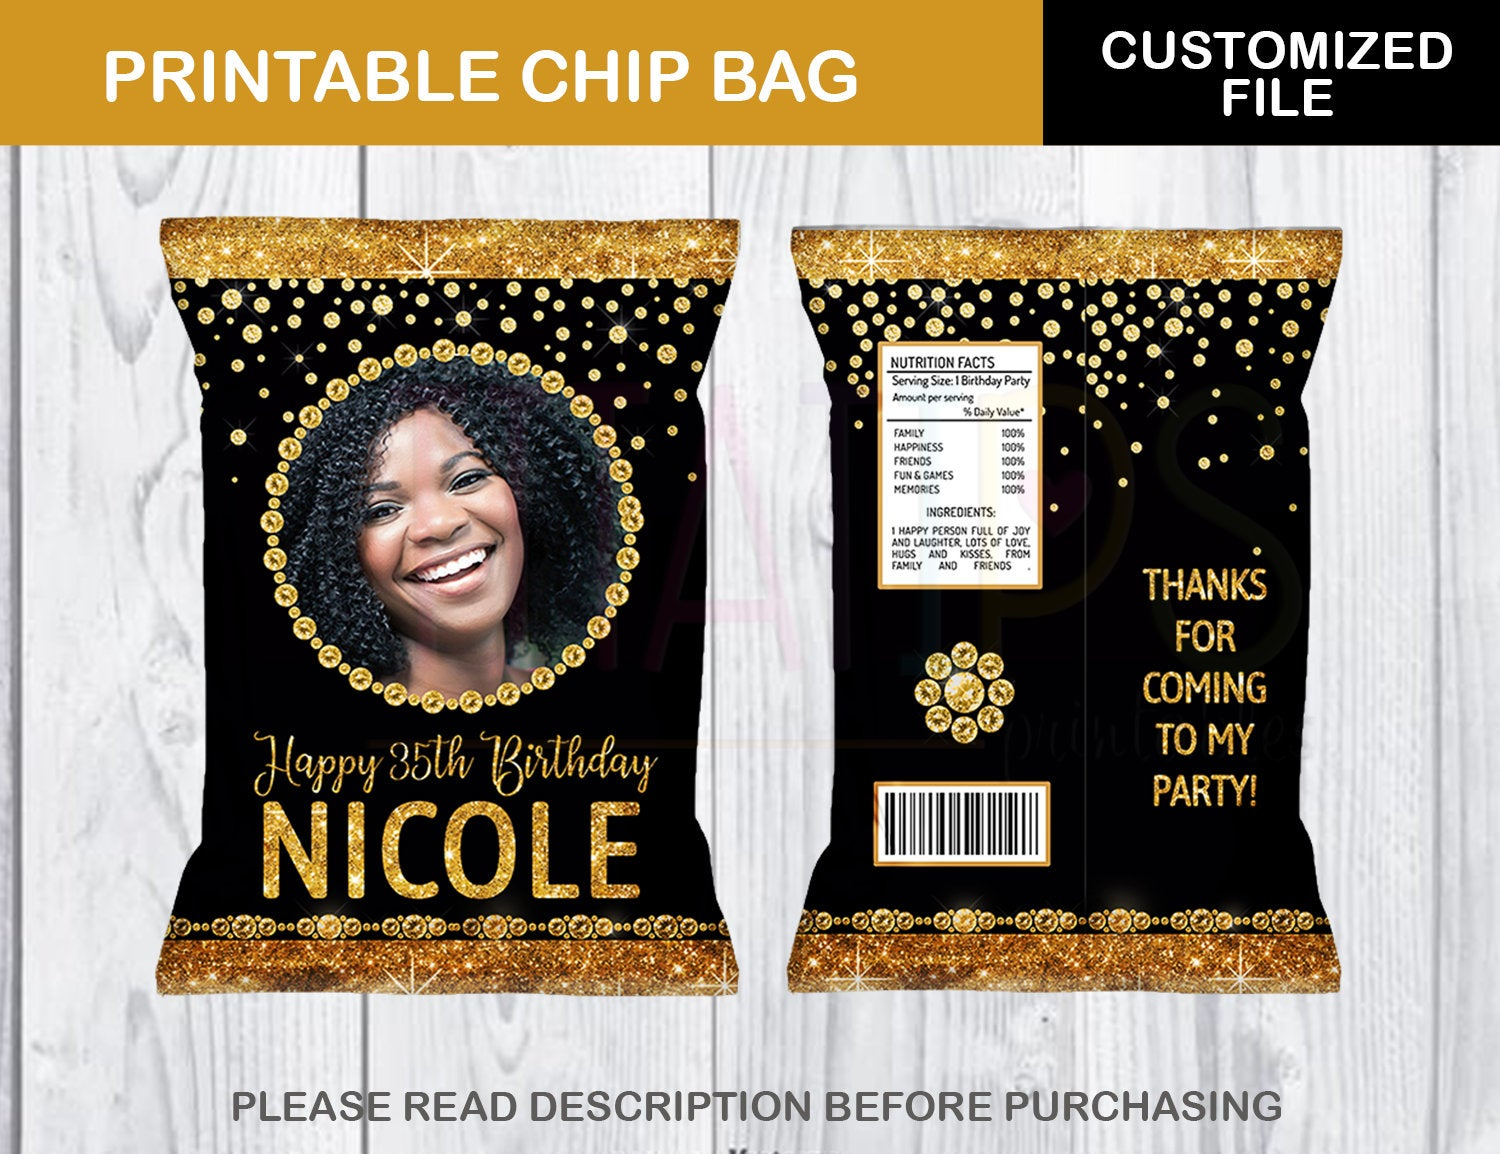 Customized Black and Gold Potato Chip Bag, ANY AGE, Glitter Diamond Favor Bag Template, DIGITAL FILE - TitaTipsPrintables